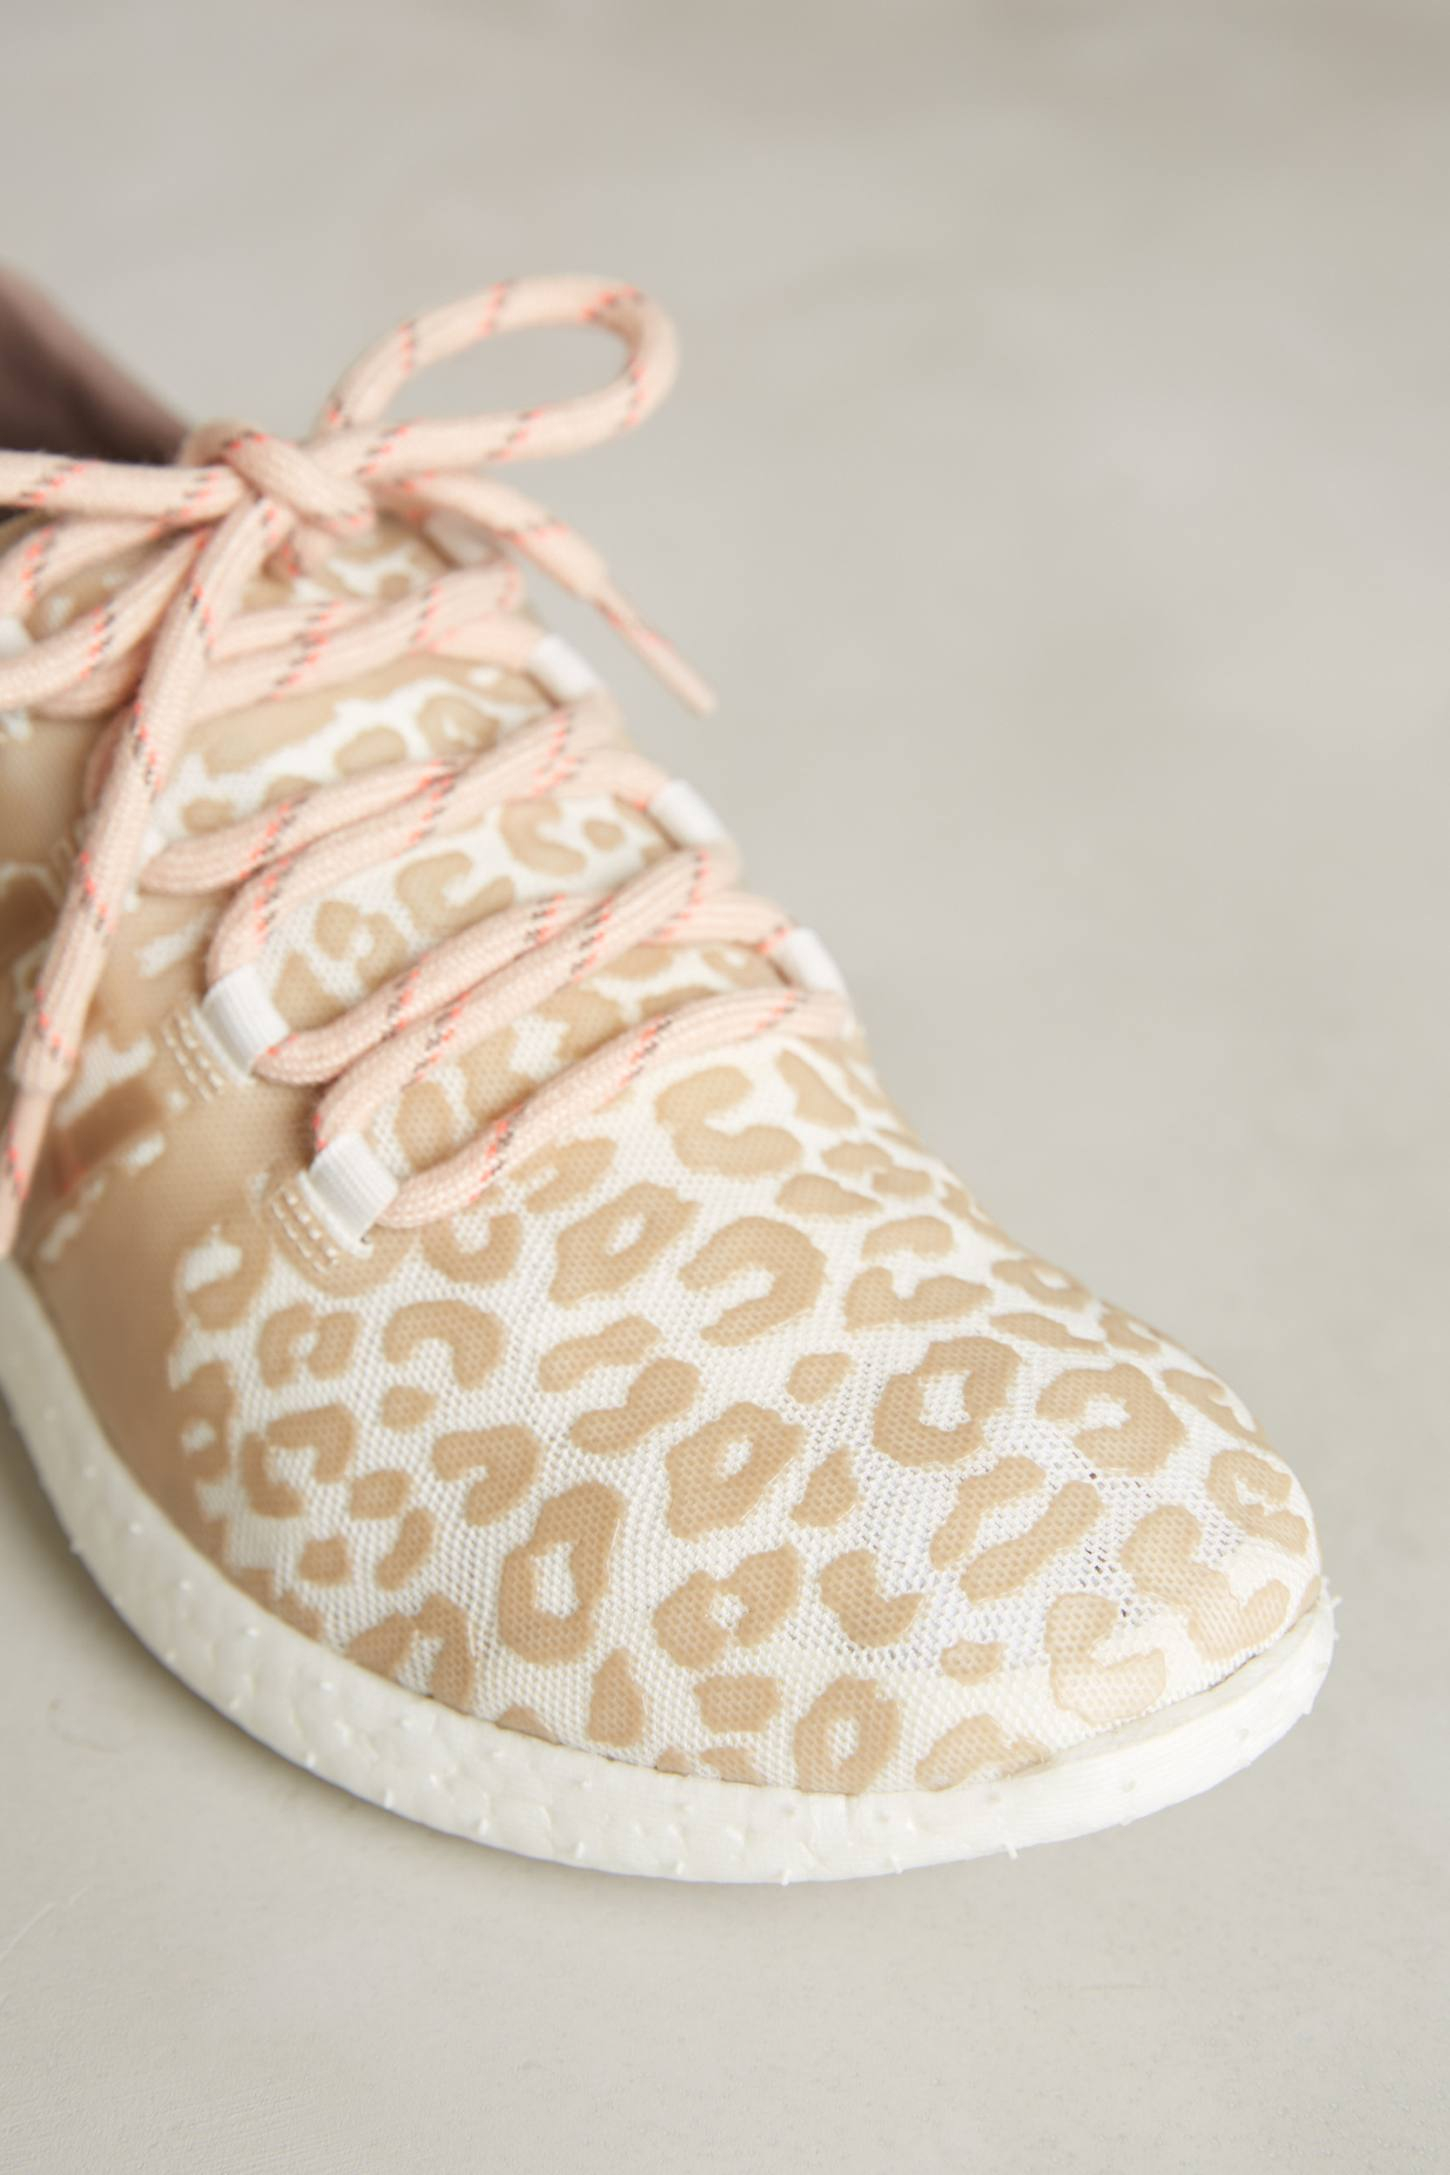 timeless design 5d44b 189cc adidas by stella mccartney leopard blush sneakers adidas by stella  mccartney leopard blush sneakers ...